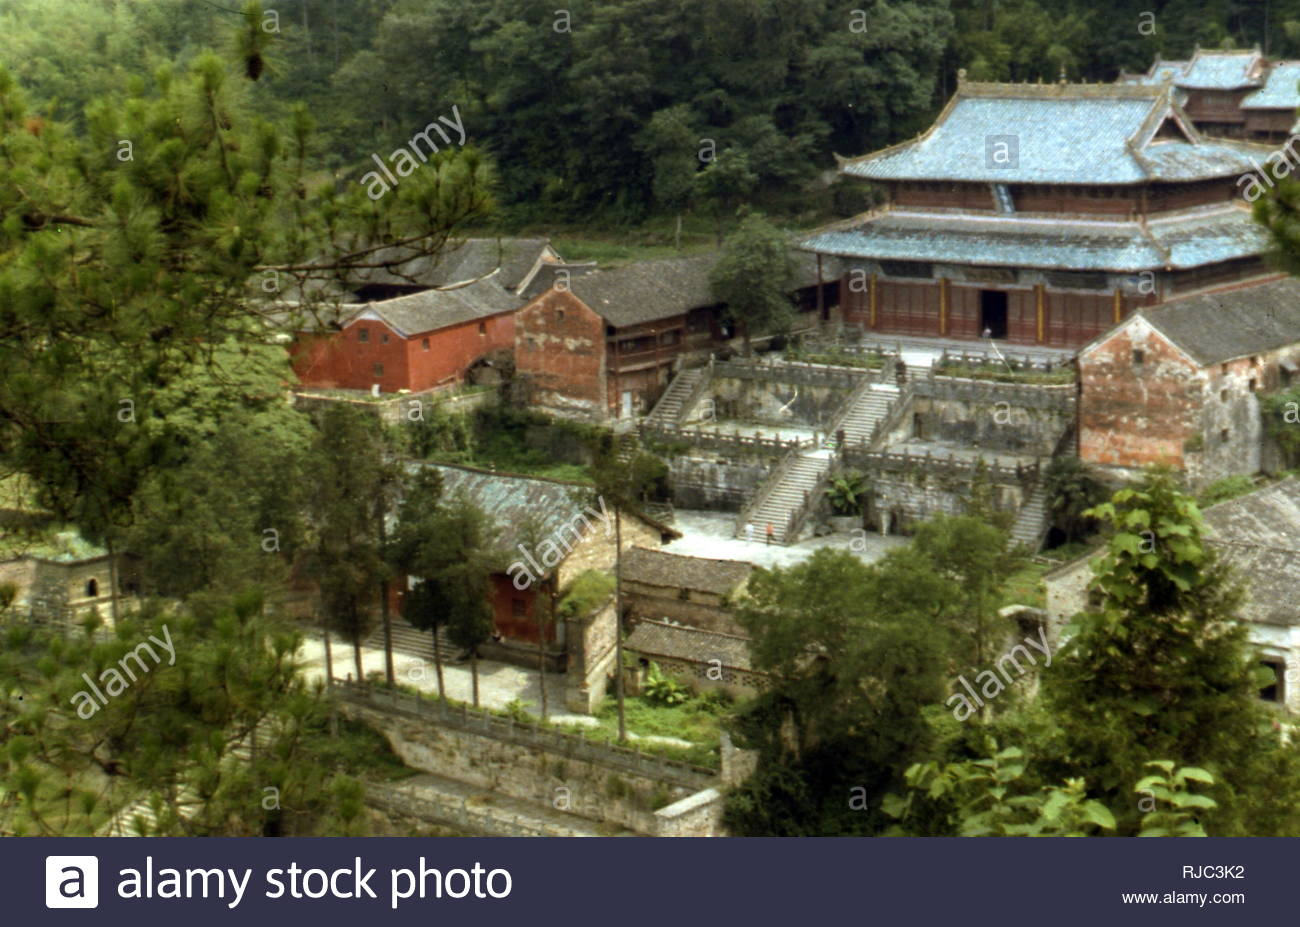 Taoist  temple associated with the god Xuanwuhe; Wudang Mountains, Hubei, China, just south of Shiyan. The Wudang Mountains are renowned for the practice of Tai chi and Taoism - Stock Image